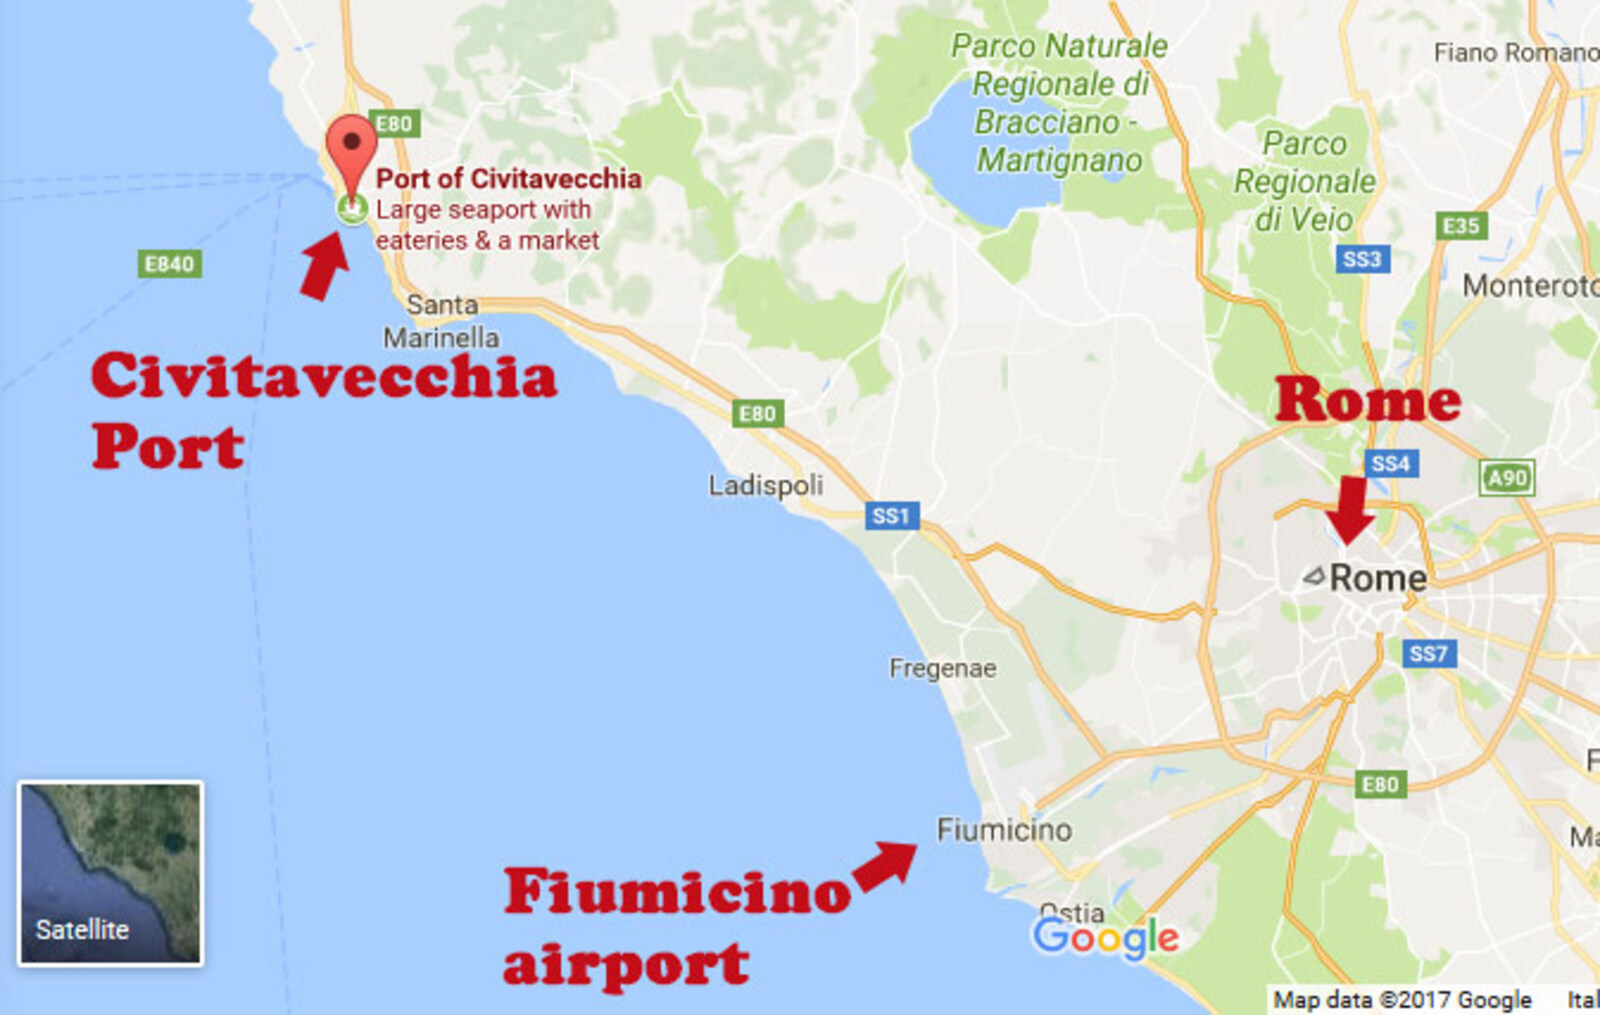 How to get from civitavecchia port to rome, all the possible ... Civitavecchia Italy Map on italian regions italy map, frascati italy map, matera italy map, acireale italy map, montichiari italy map, florence italy map, lavagna italy map, chivasso italy map, poggio italy map, castelsardo italy map, marseilles italy map, avignon italy map, munich italy map, sezze italy map, kotor italy map, locri italy map, codroipo italy map, ports of italy map, palau italy map, marotta italy map,